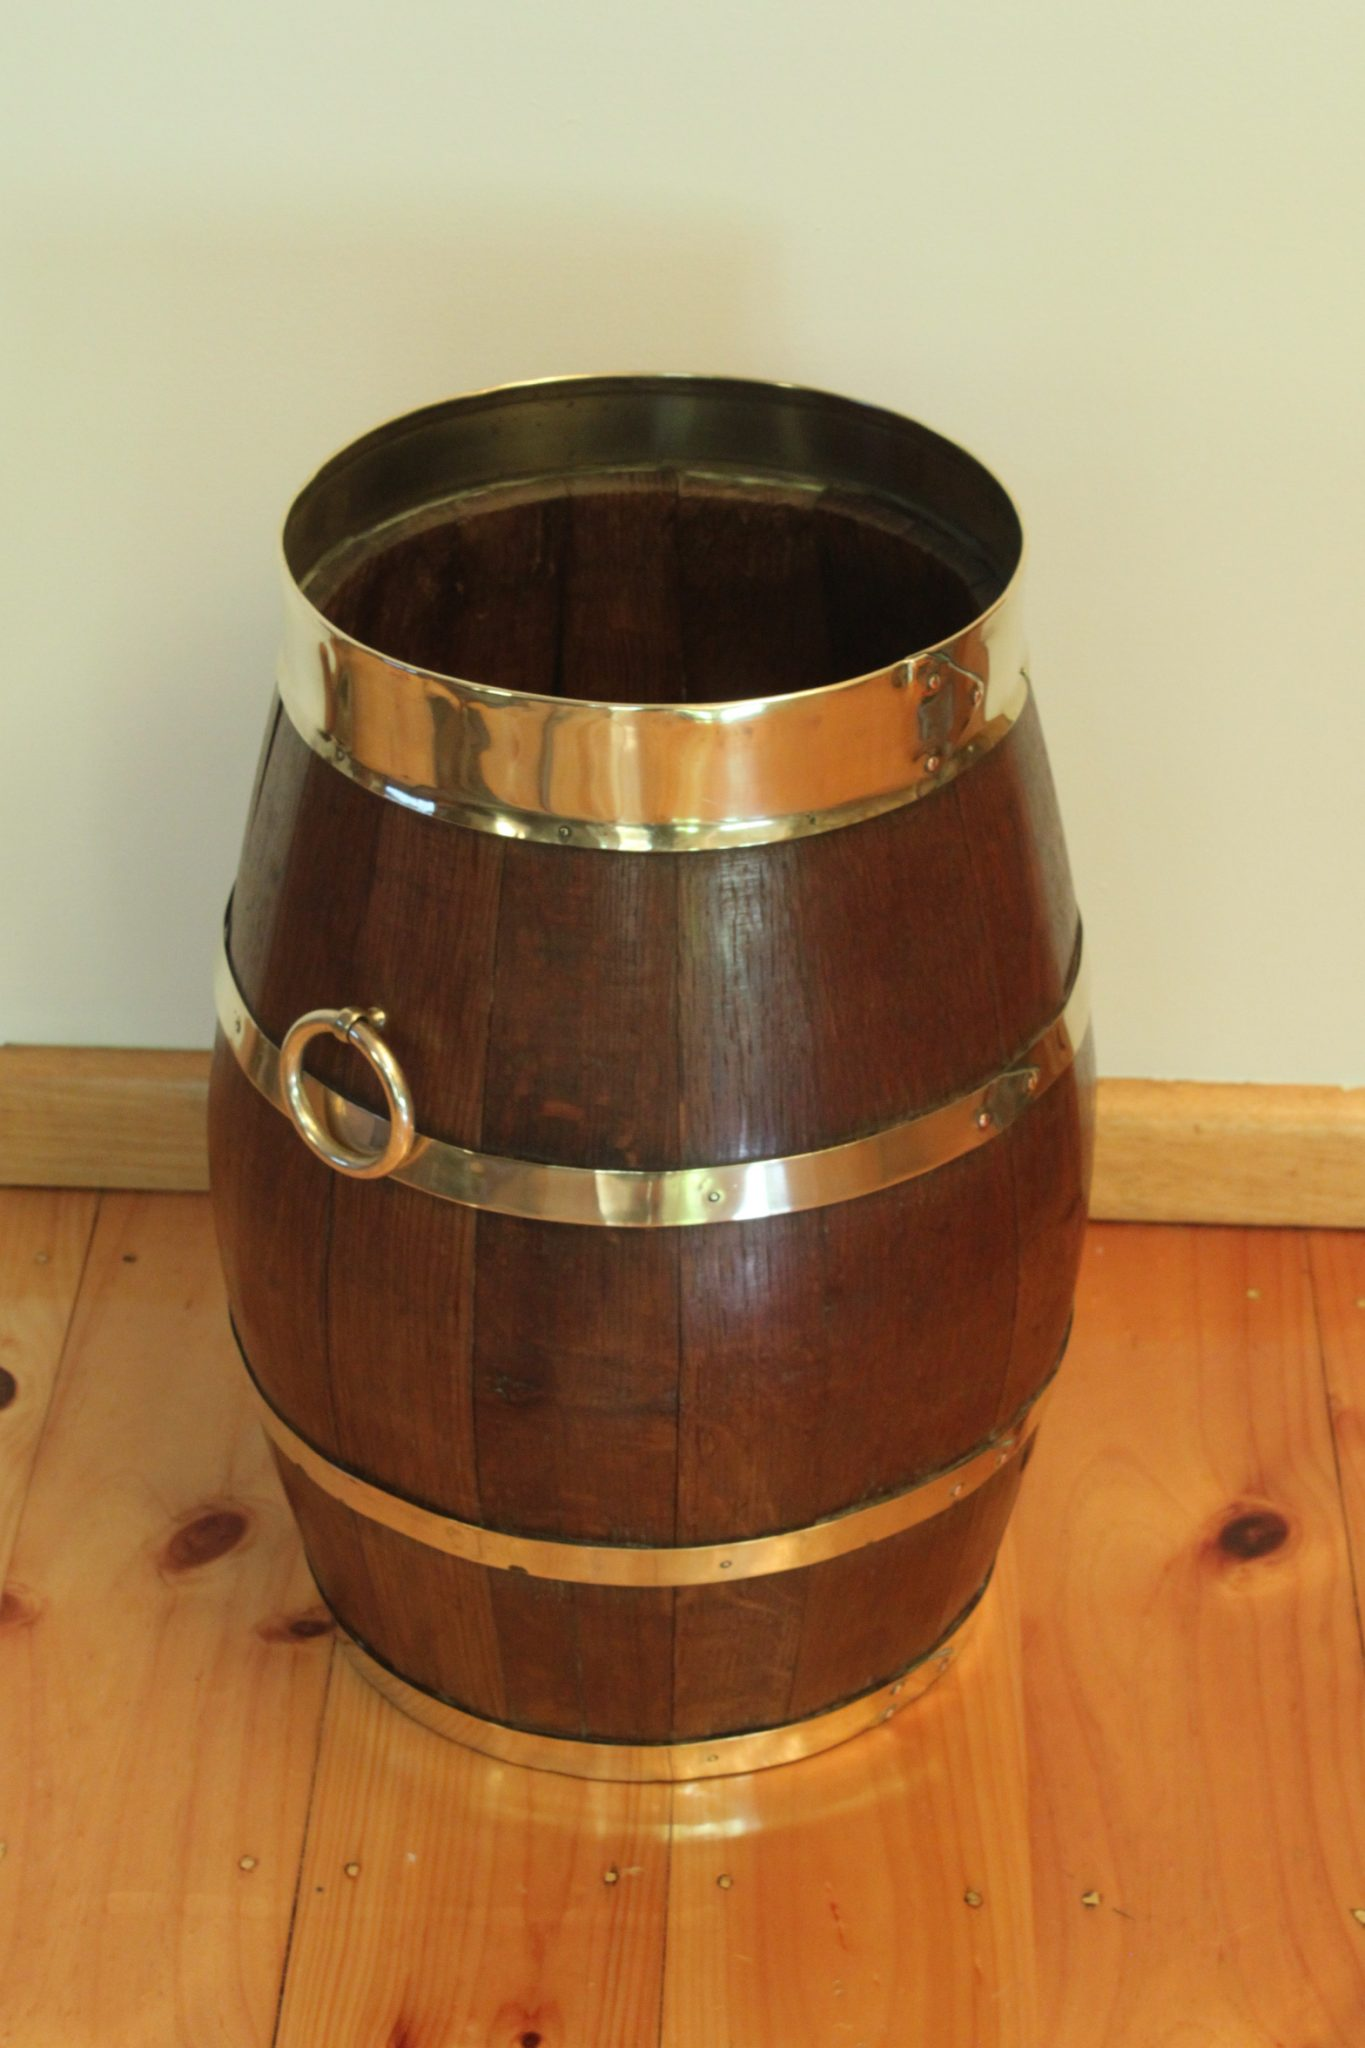 Brass bound barrel stick or umbrella stand